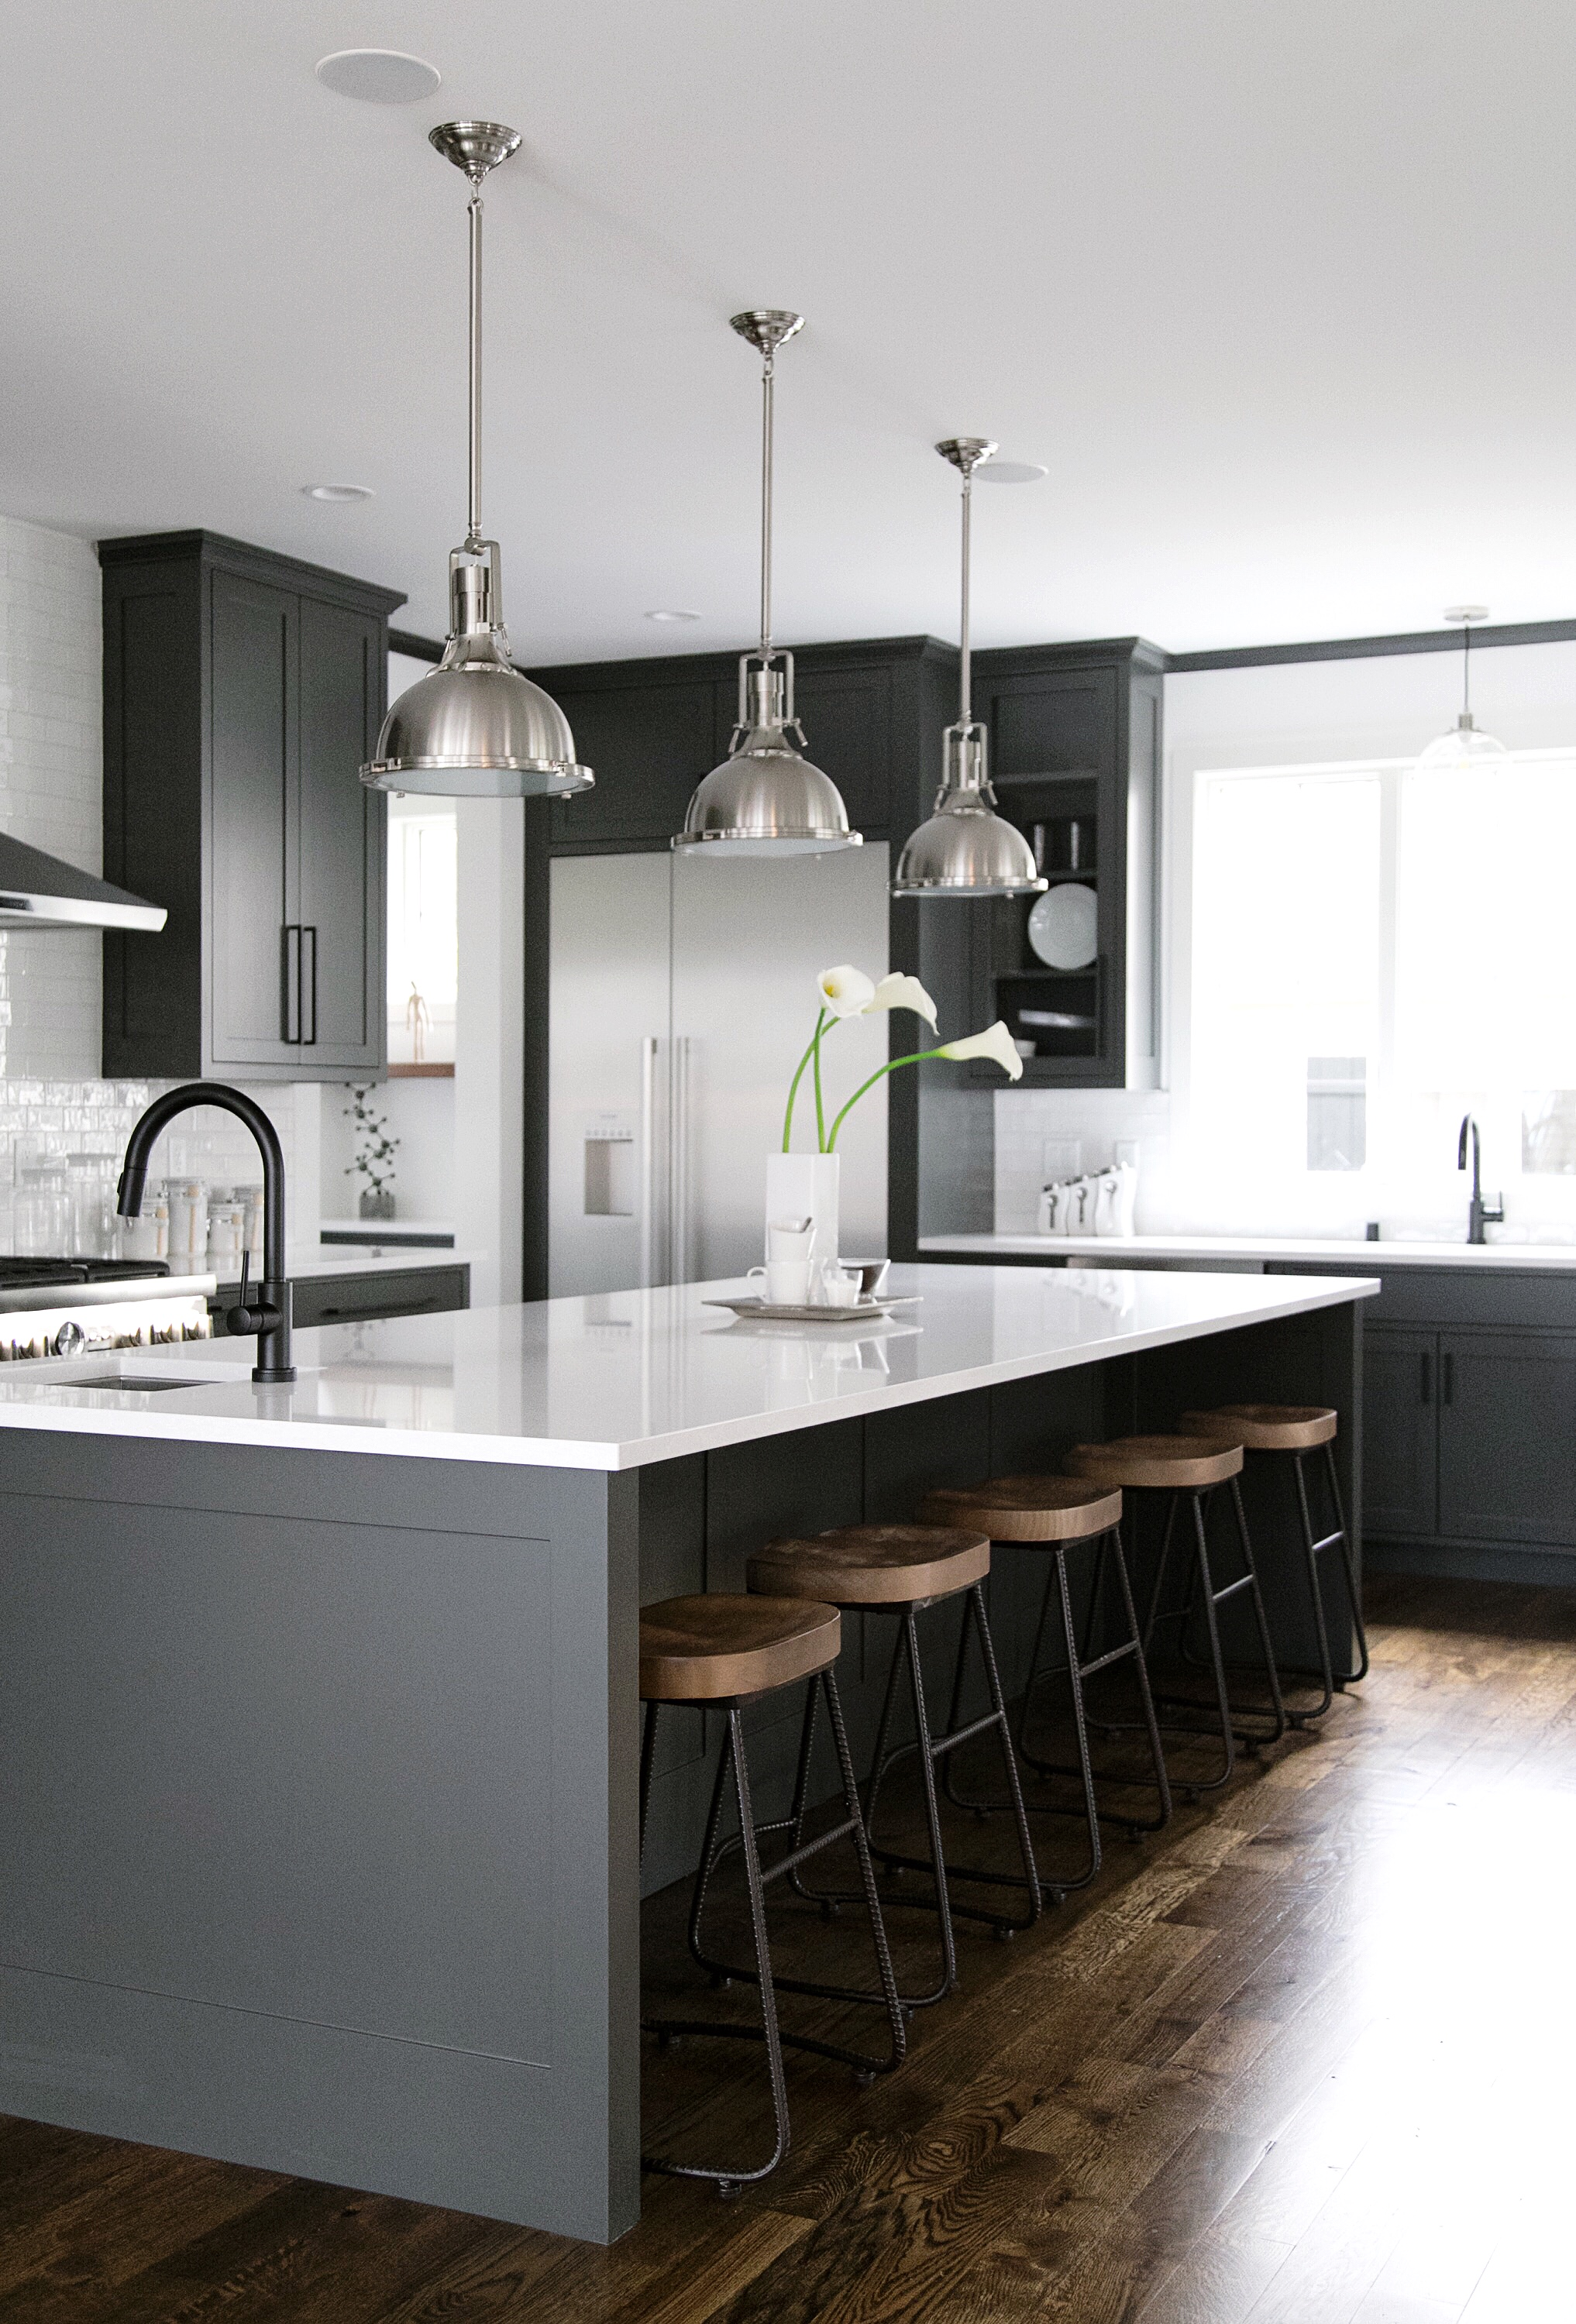 stylish sustainable kitchen design at the cambria design sustainable kitchen design architectural digest